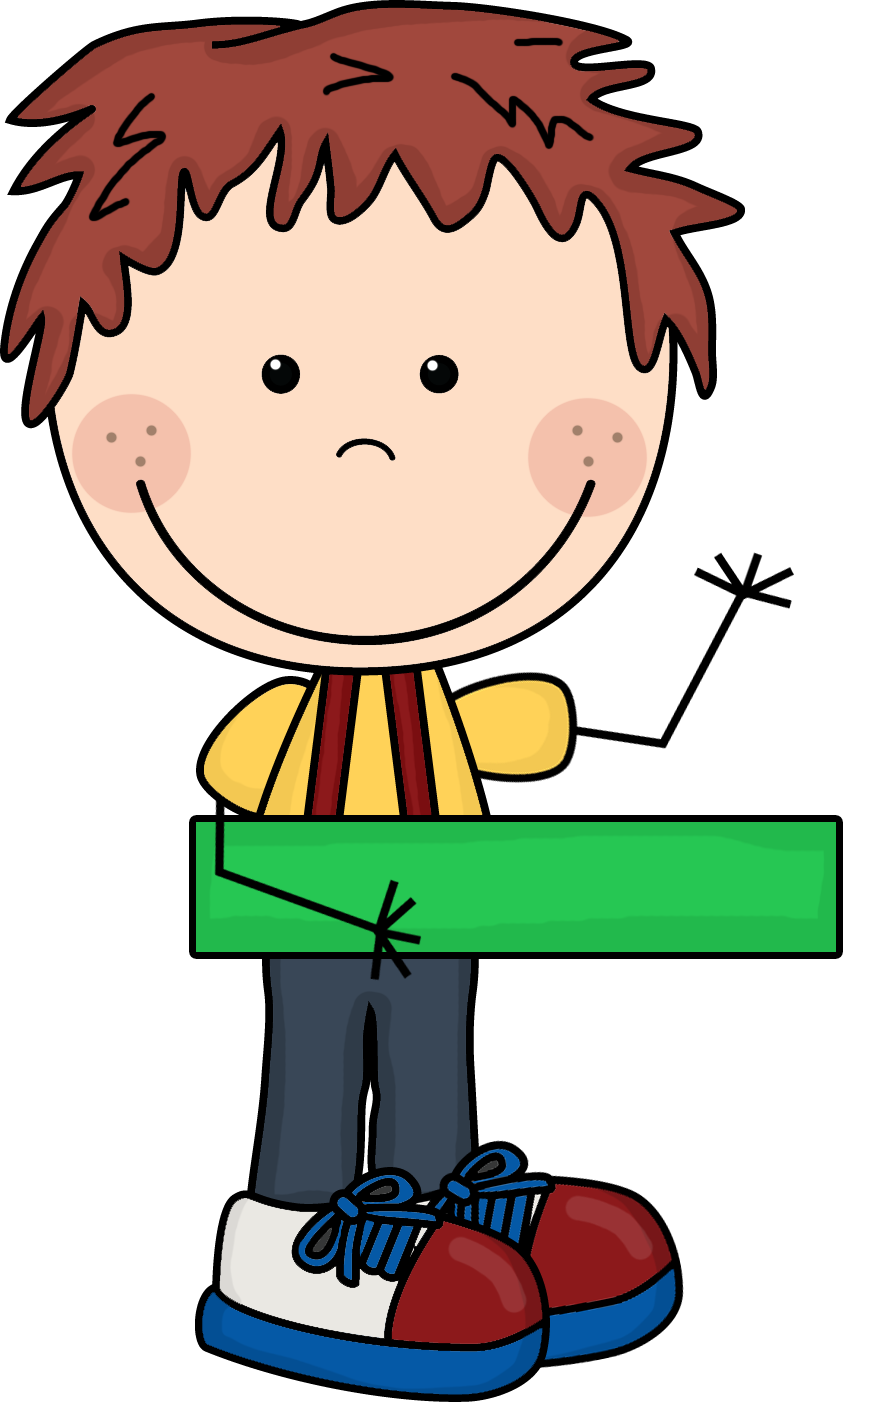 Planning clipart stick figure. Palitos kids matematika t